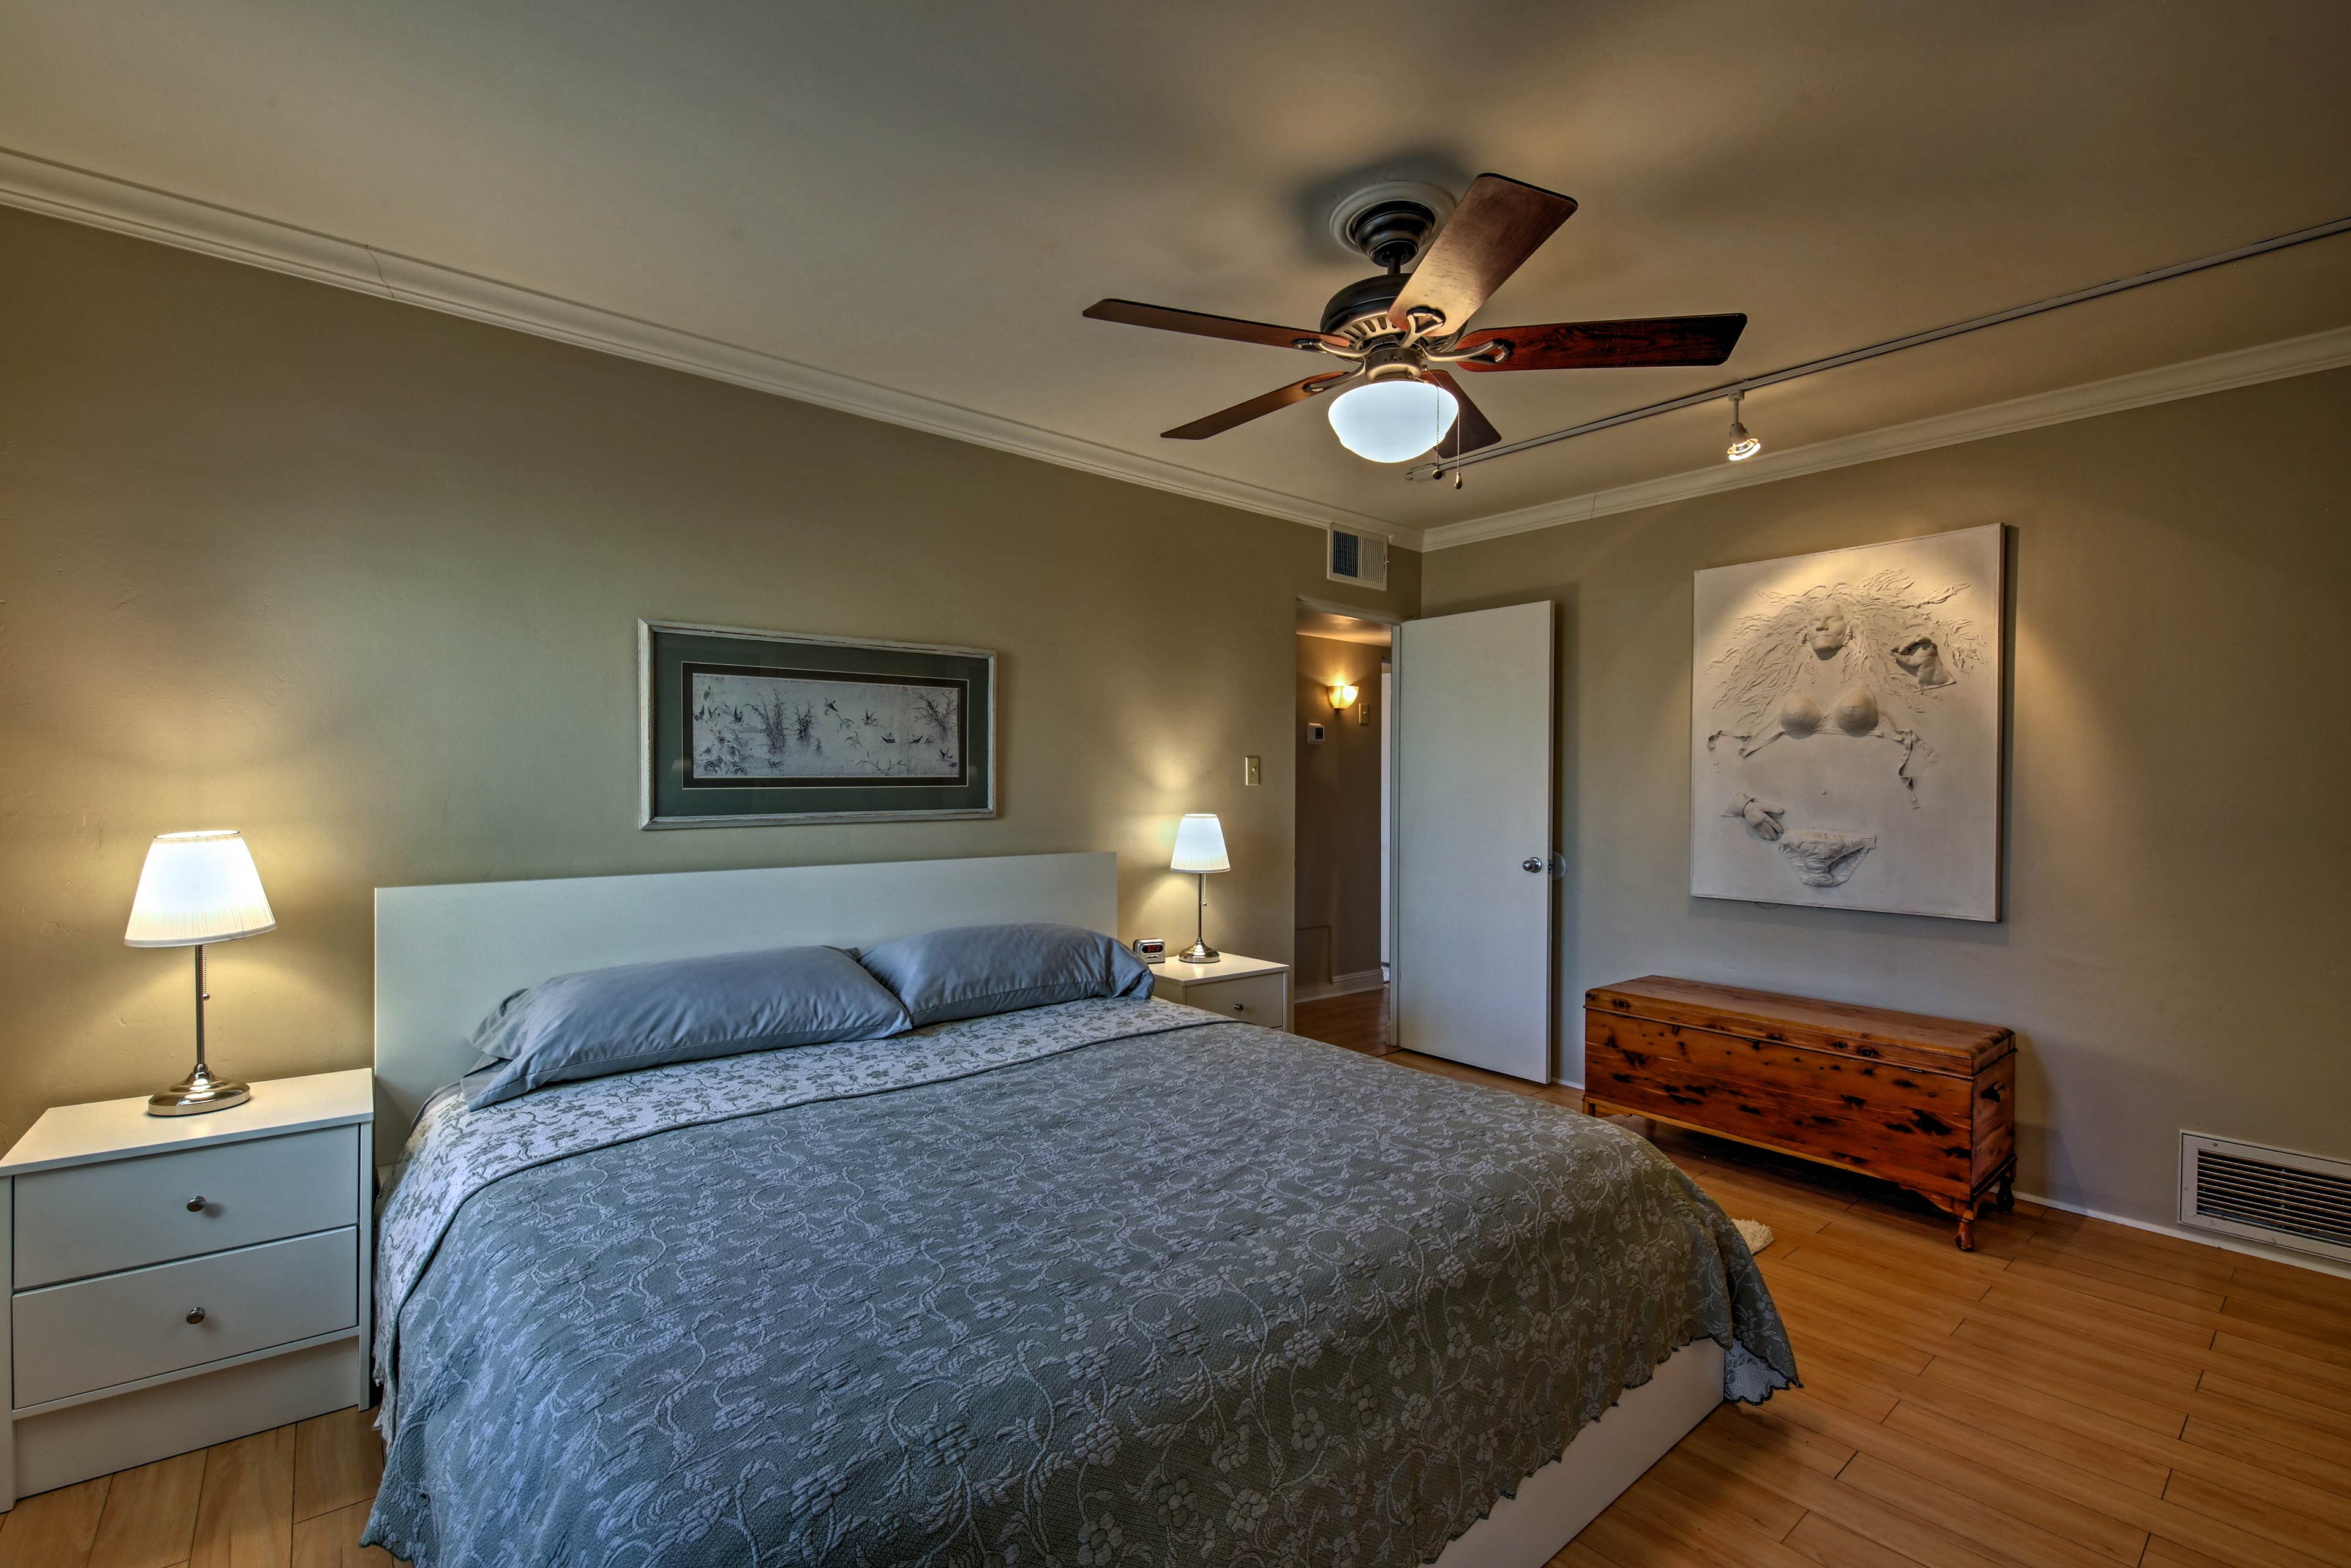 Retire to the master bedroom to rest on the king-sized bed.